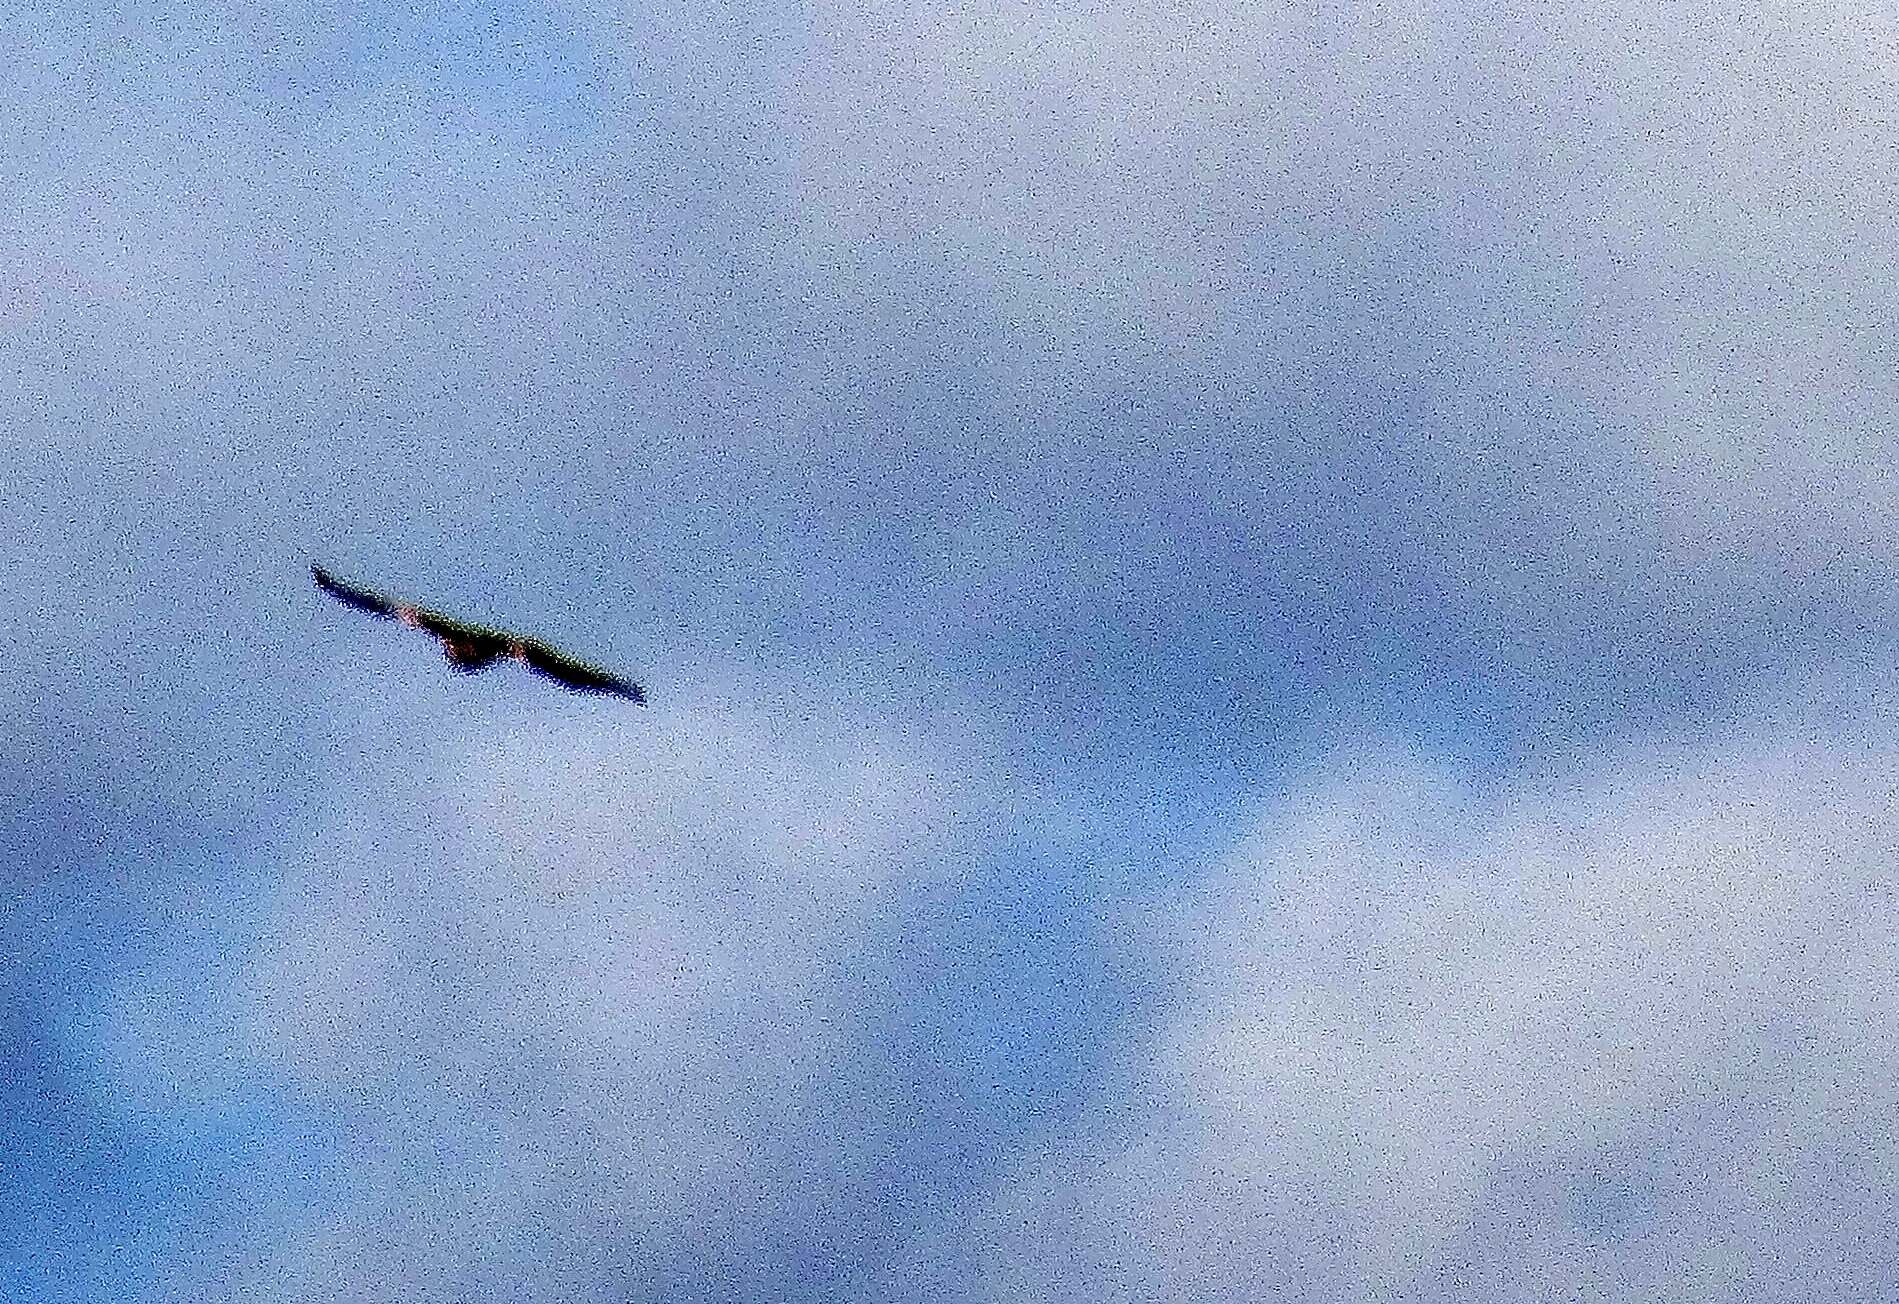 Red kite against blue sky and clouds